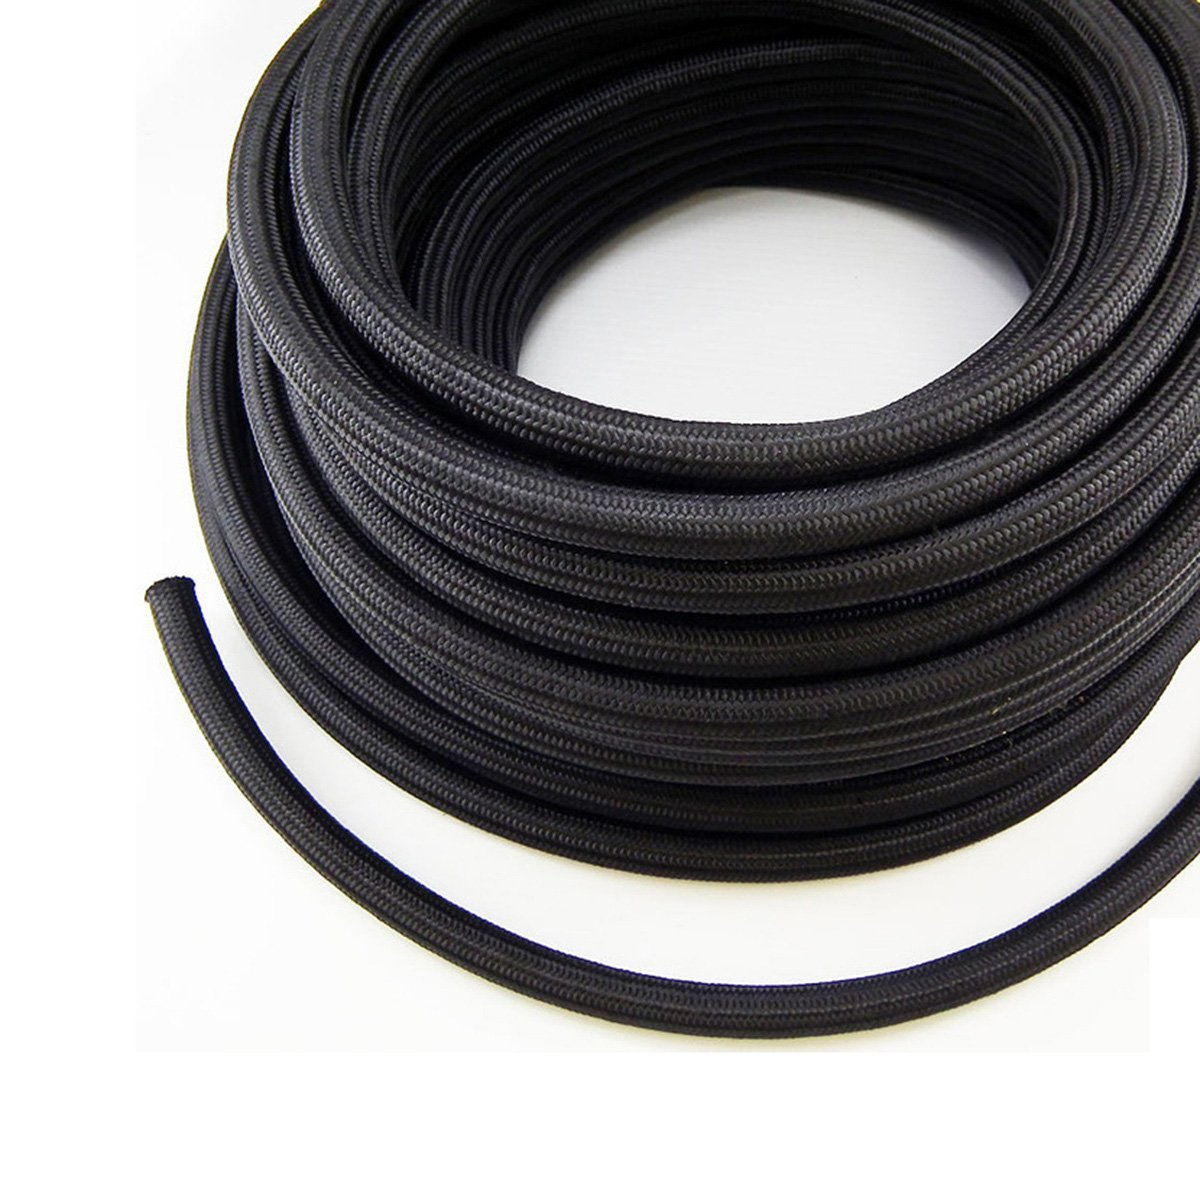 theBlueStone 10FT -8AN Nylon Braided Fuel Line Hose for 1/2' Tube Size